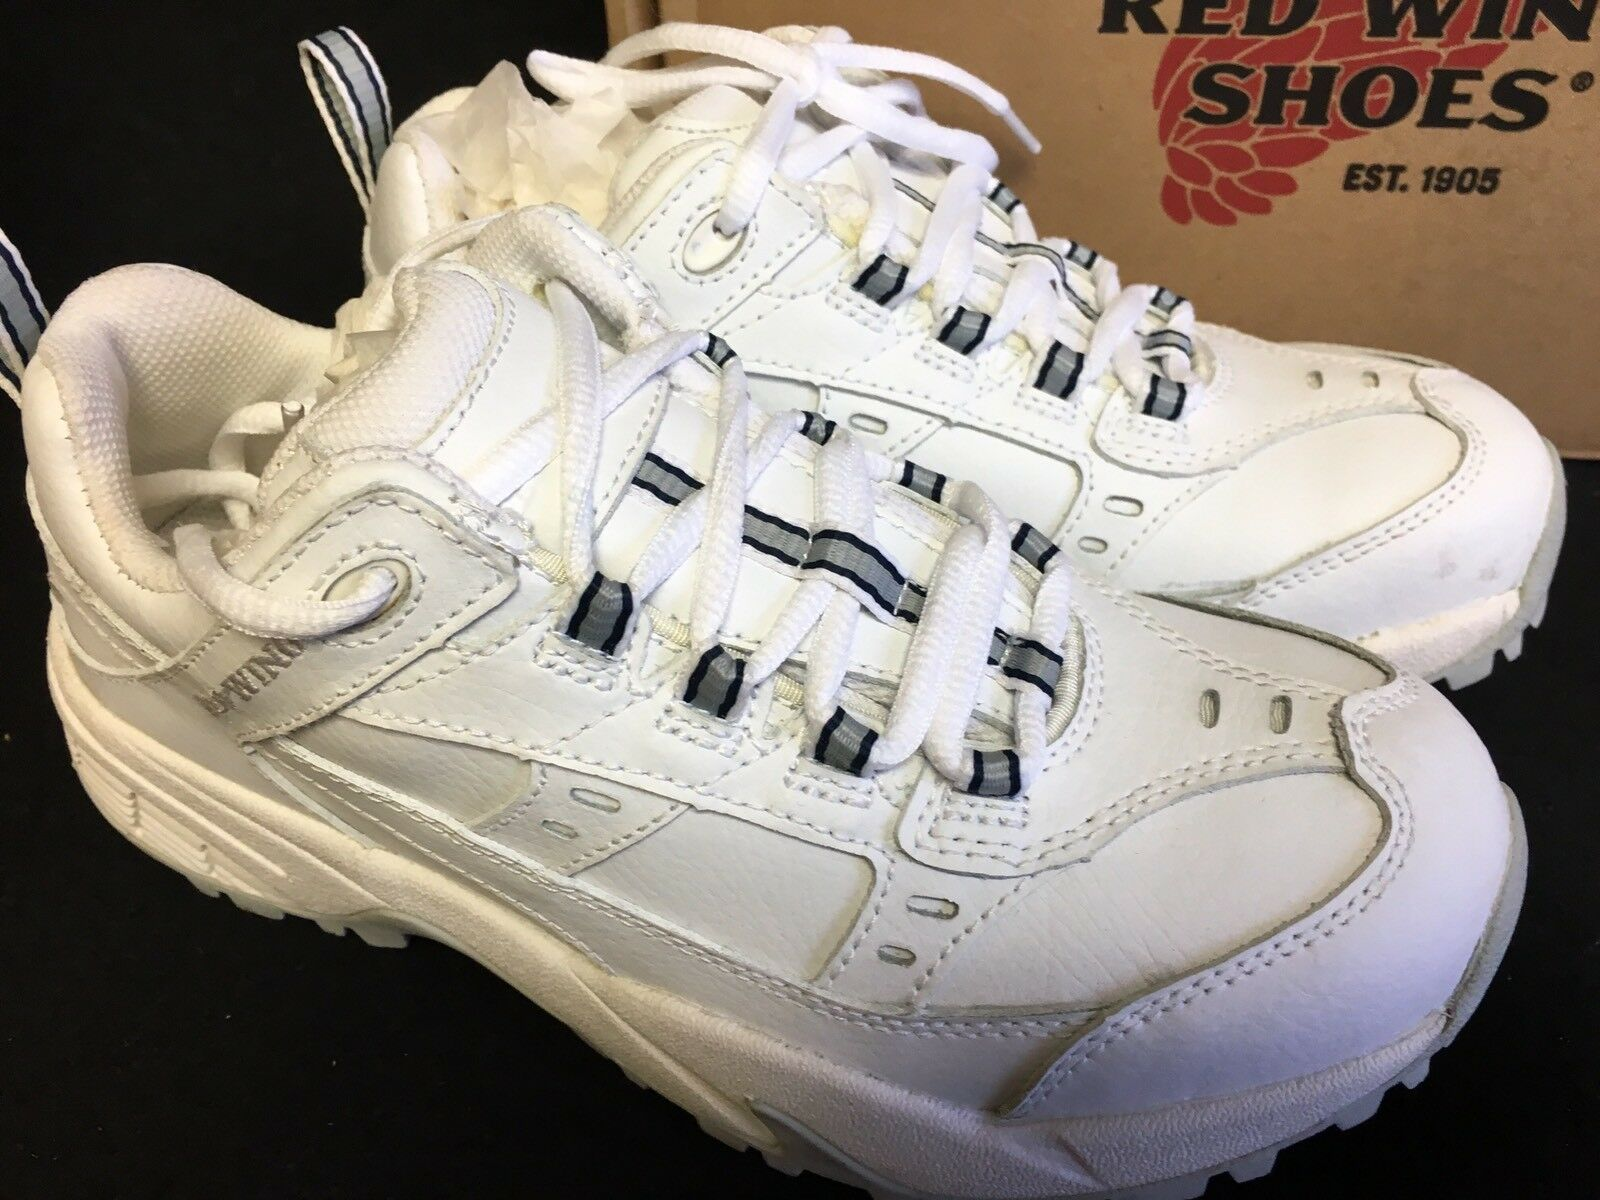 rouge Wing Athletic 1634 Work baskets baskets baskets femmes Tennis Electrical Hazard chaussures Lace 9ad6f5